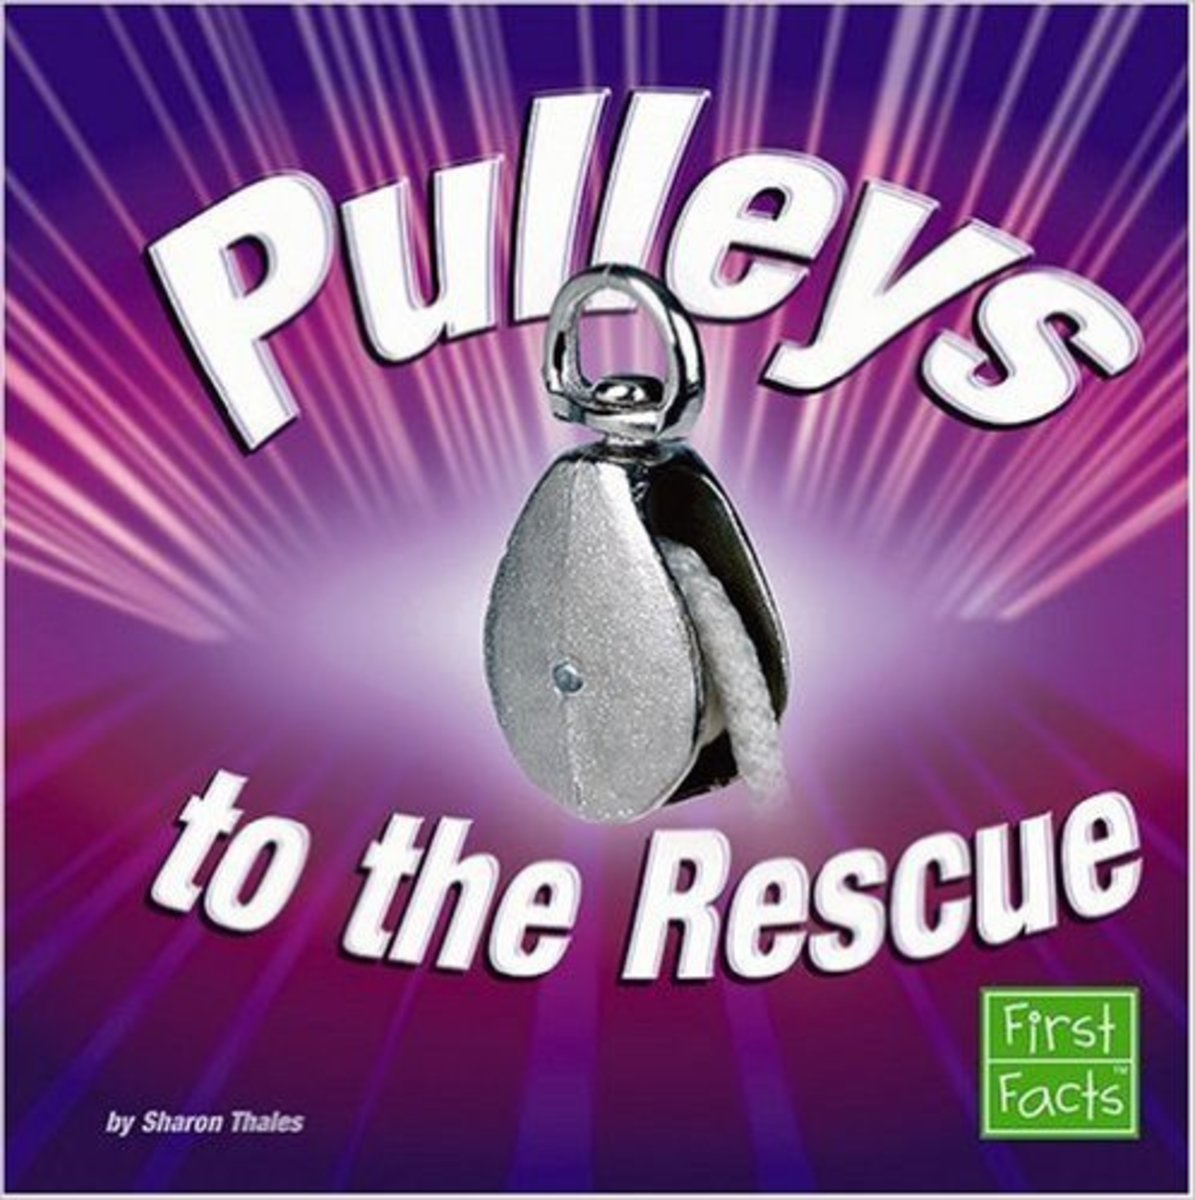 Pulleys to the Rescue (Simple Machines to the Rescue) by Sharon Thales